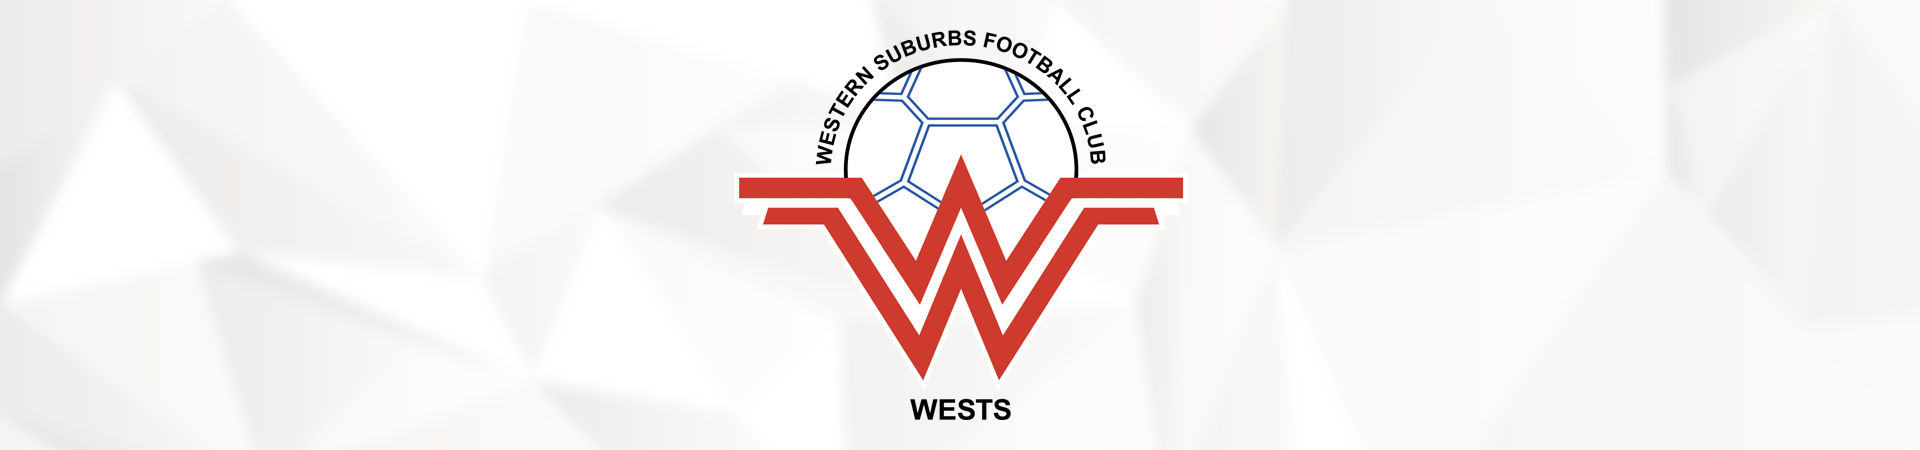 Club Shop Western Suburbs